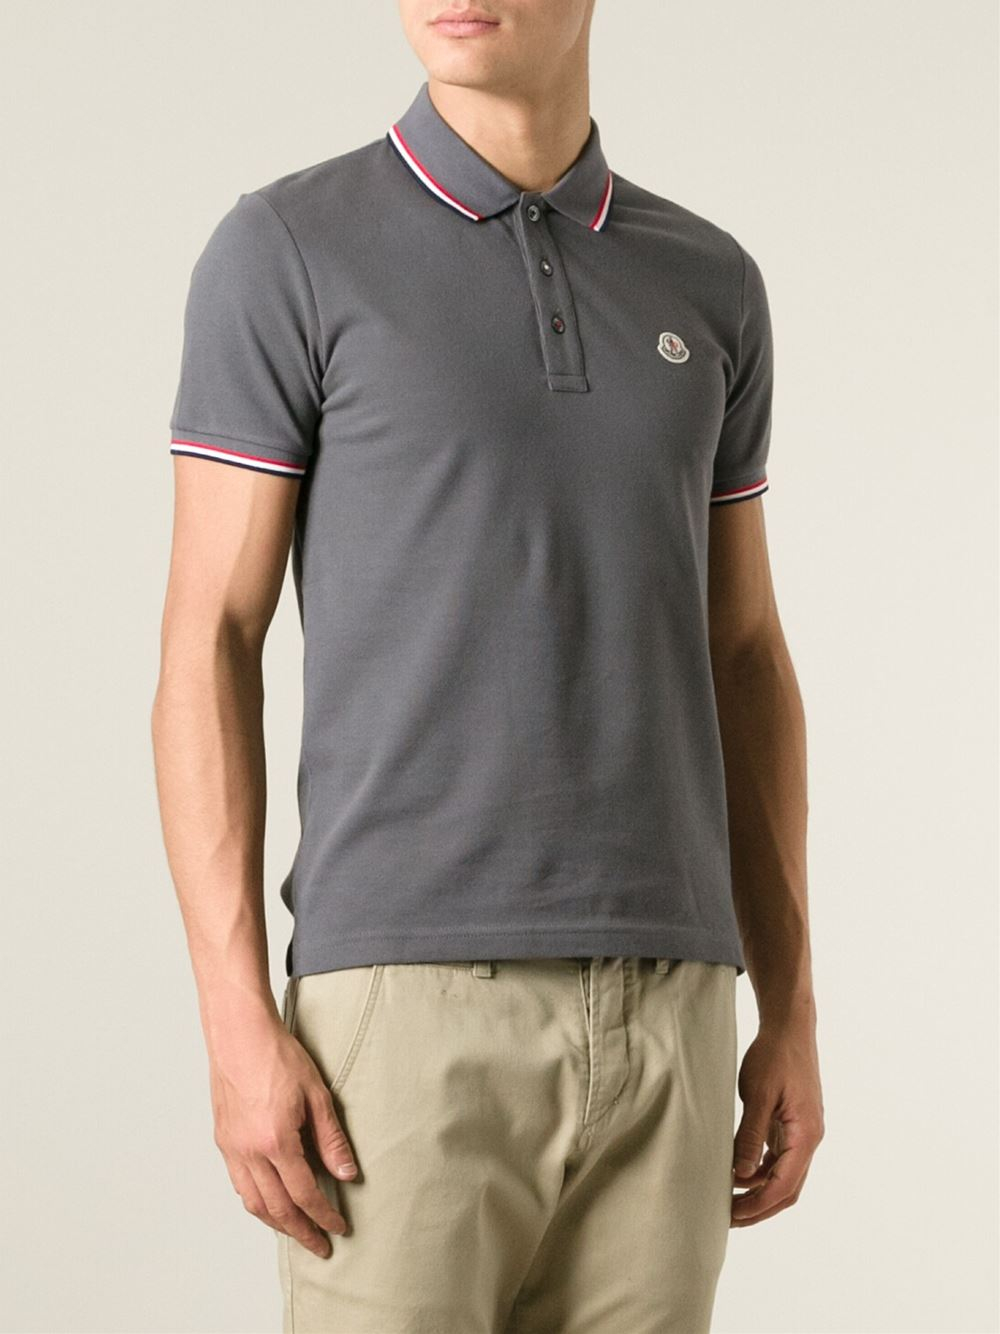 moncler polo top grey